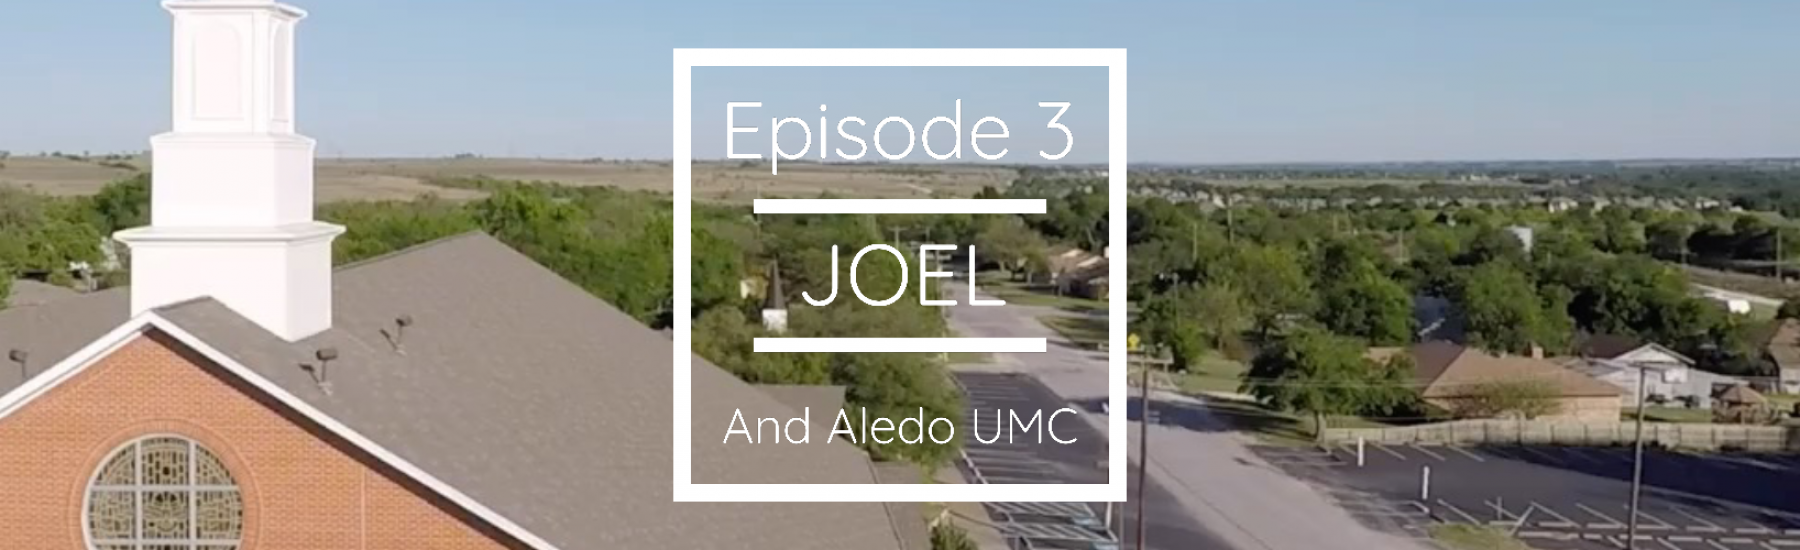 Episode 3 - Joel and Aledo UMC